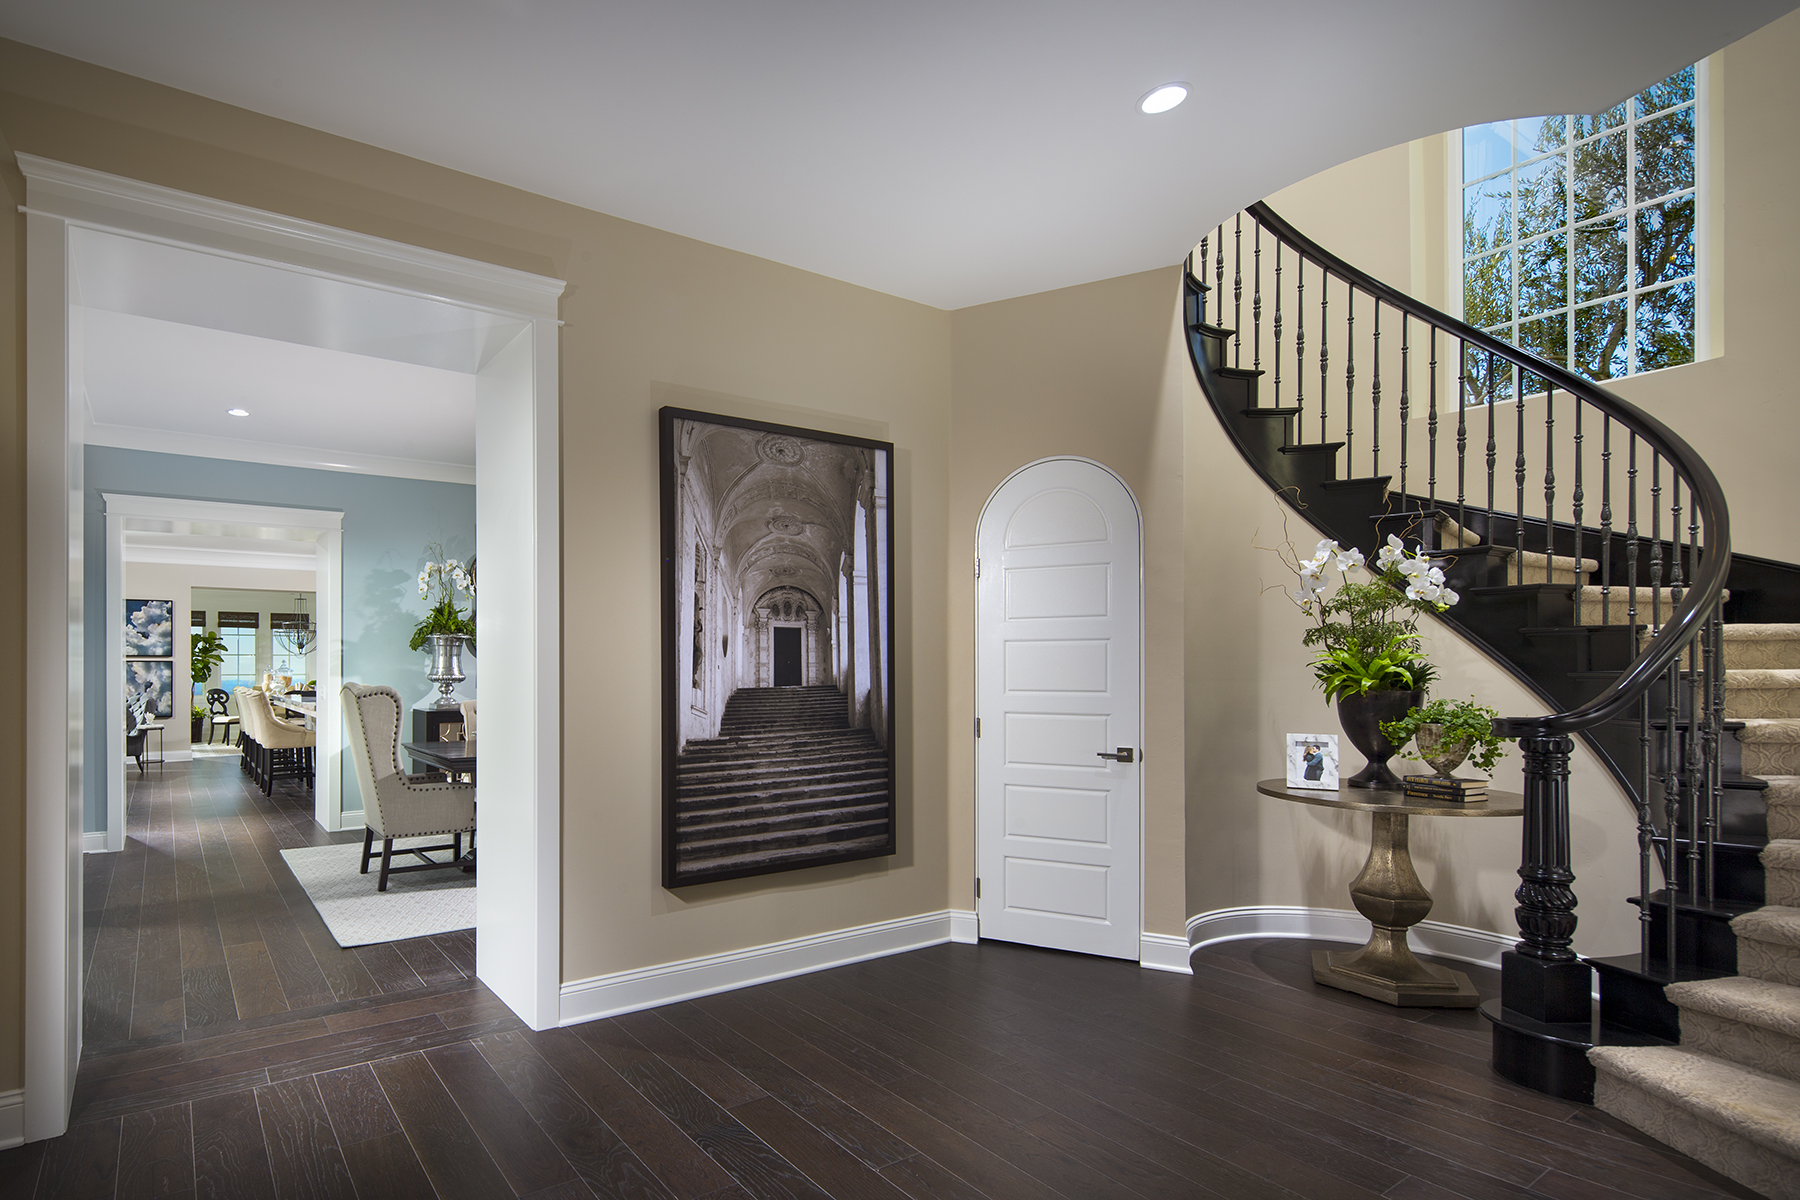 1703-13_PL3_Entry_The_Estates_DavidsonCommunities_EricFiggePhotos.jpg